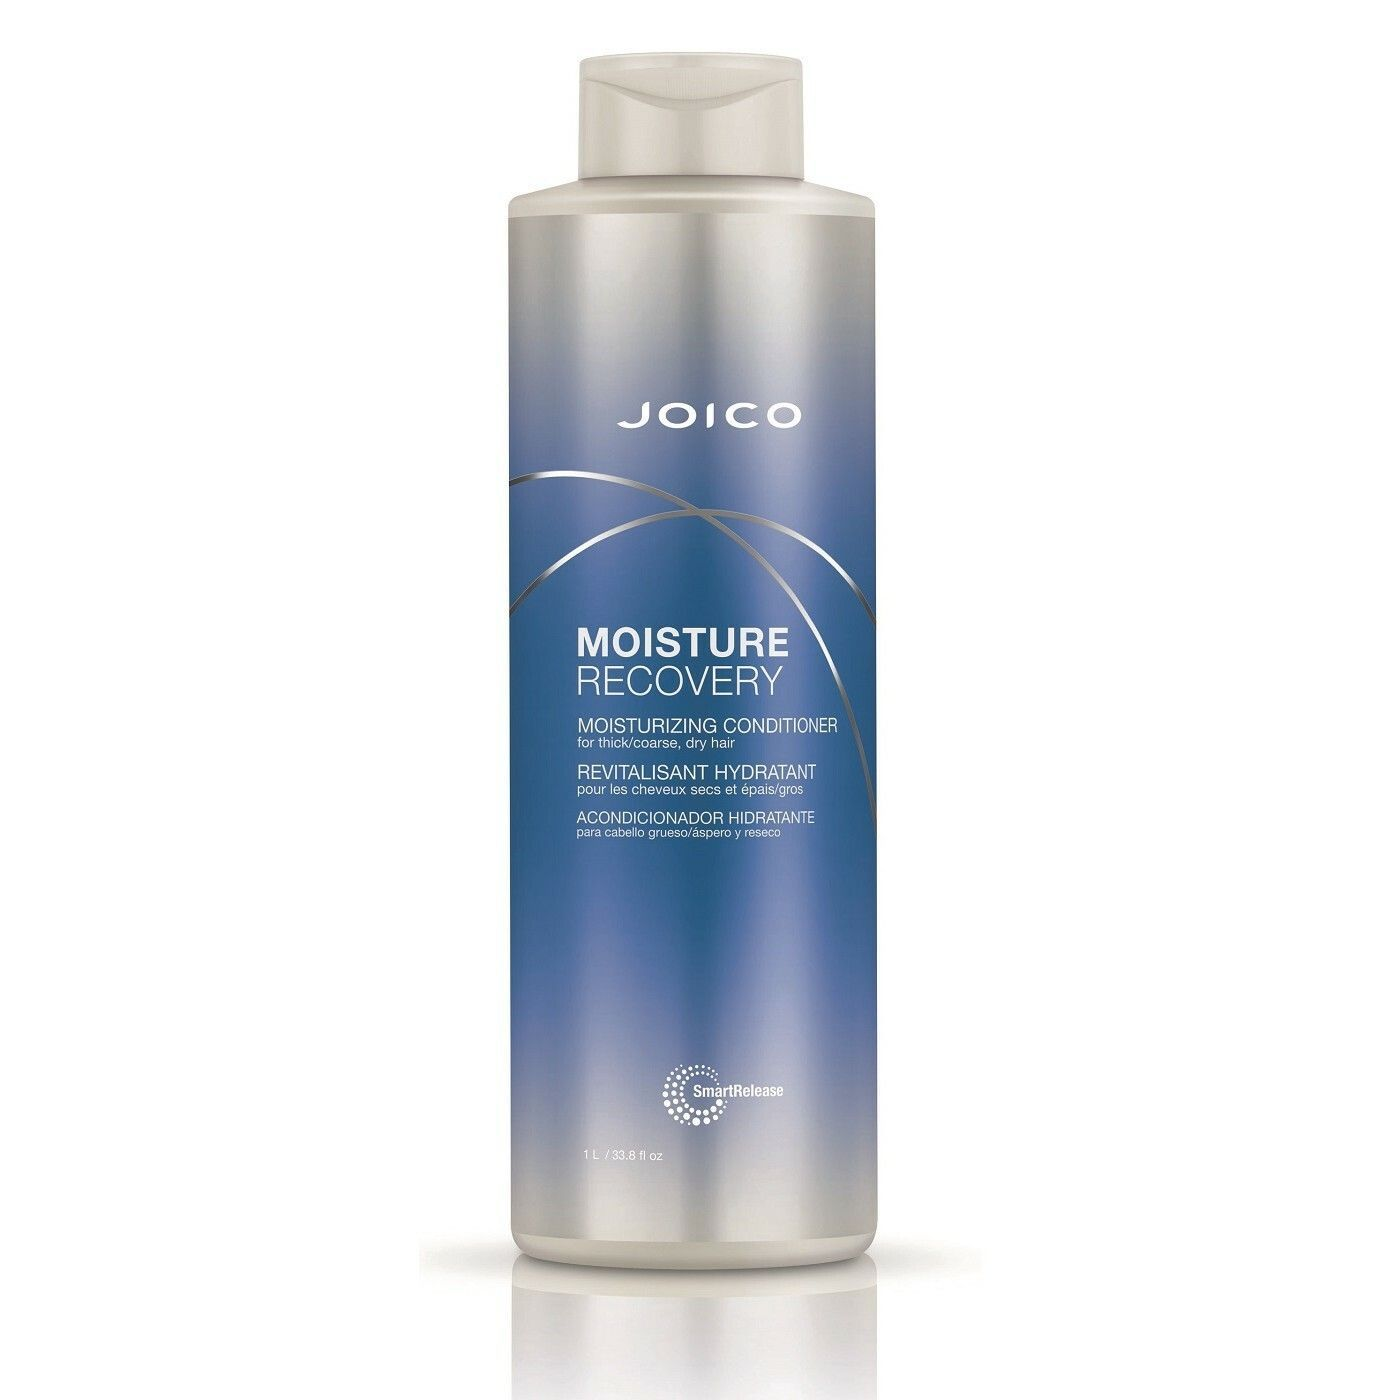 Joico Moisture Recovery Conditioner - 1000ml